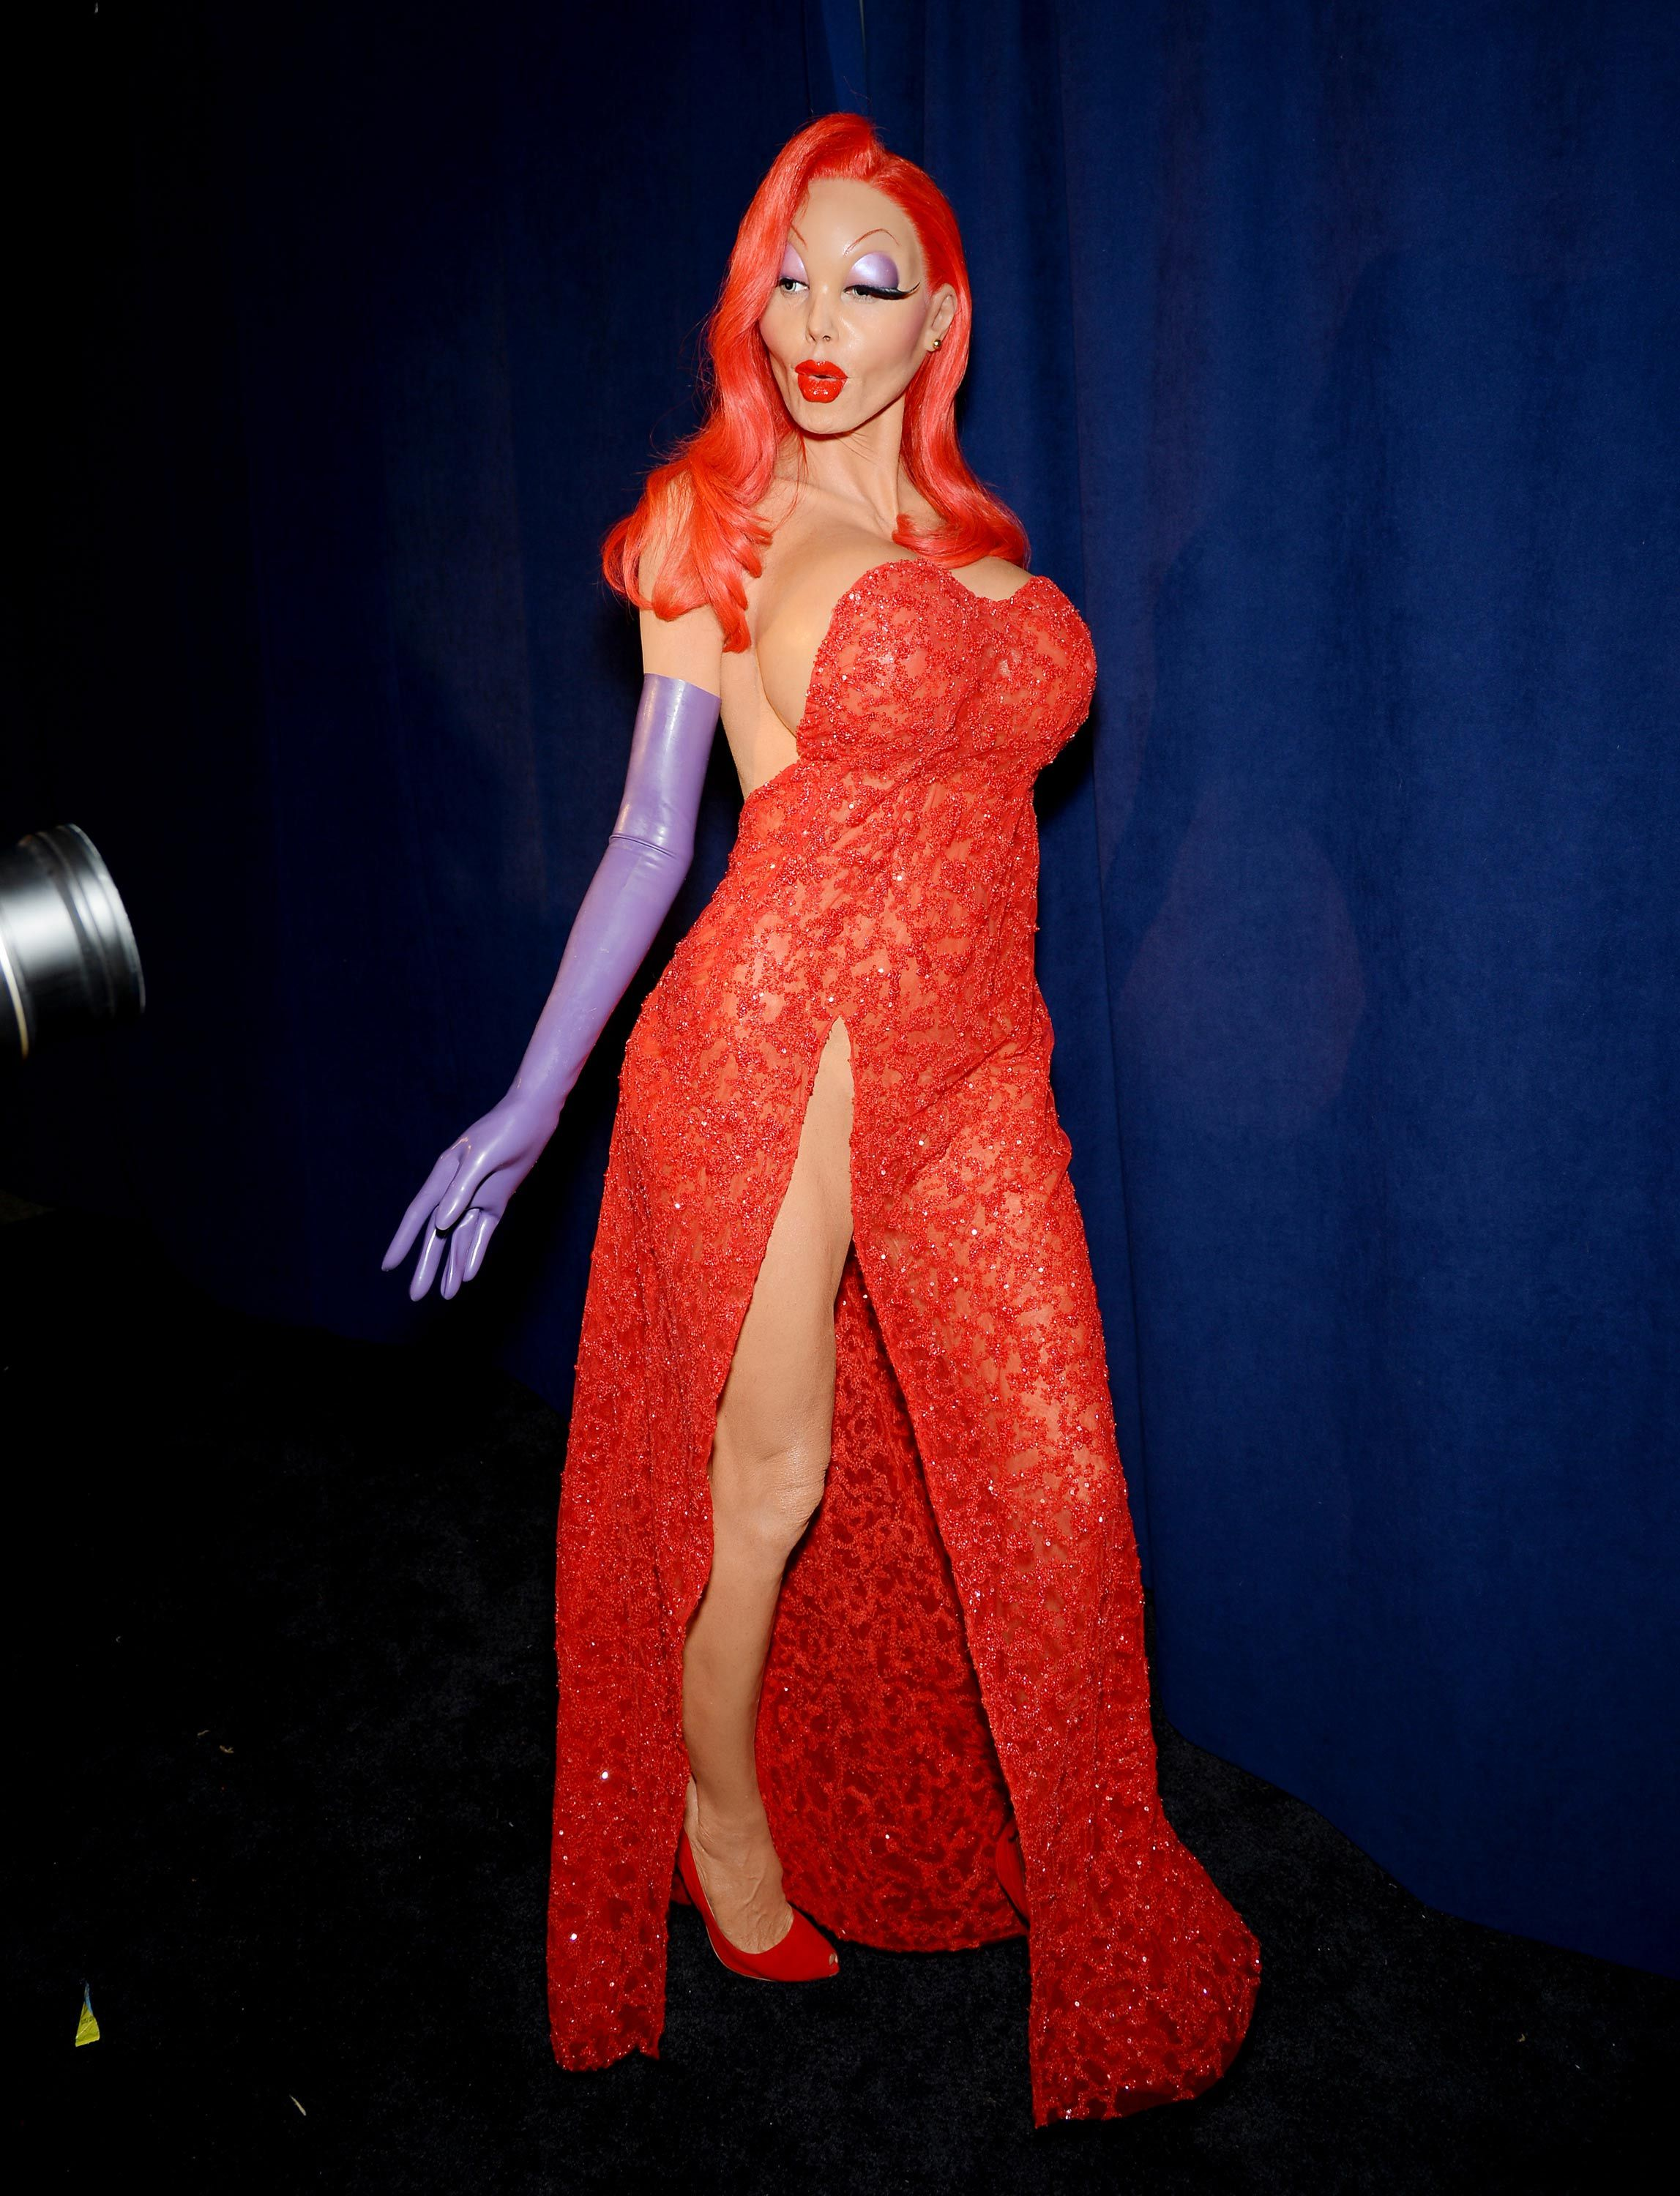 Heidi Klum Halloween Costumes Over the Years - Heidi Klum ...